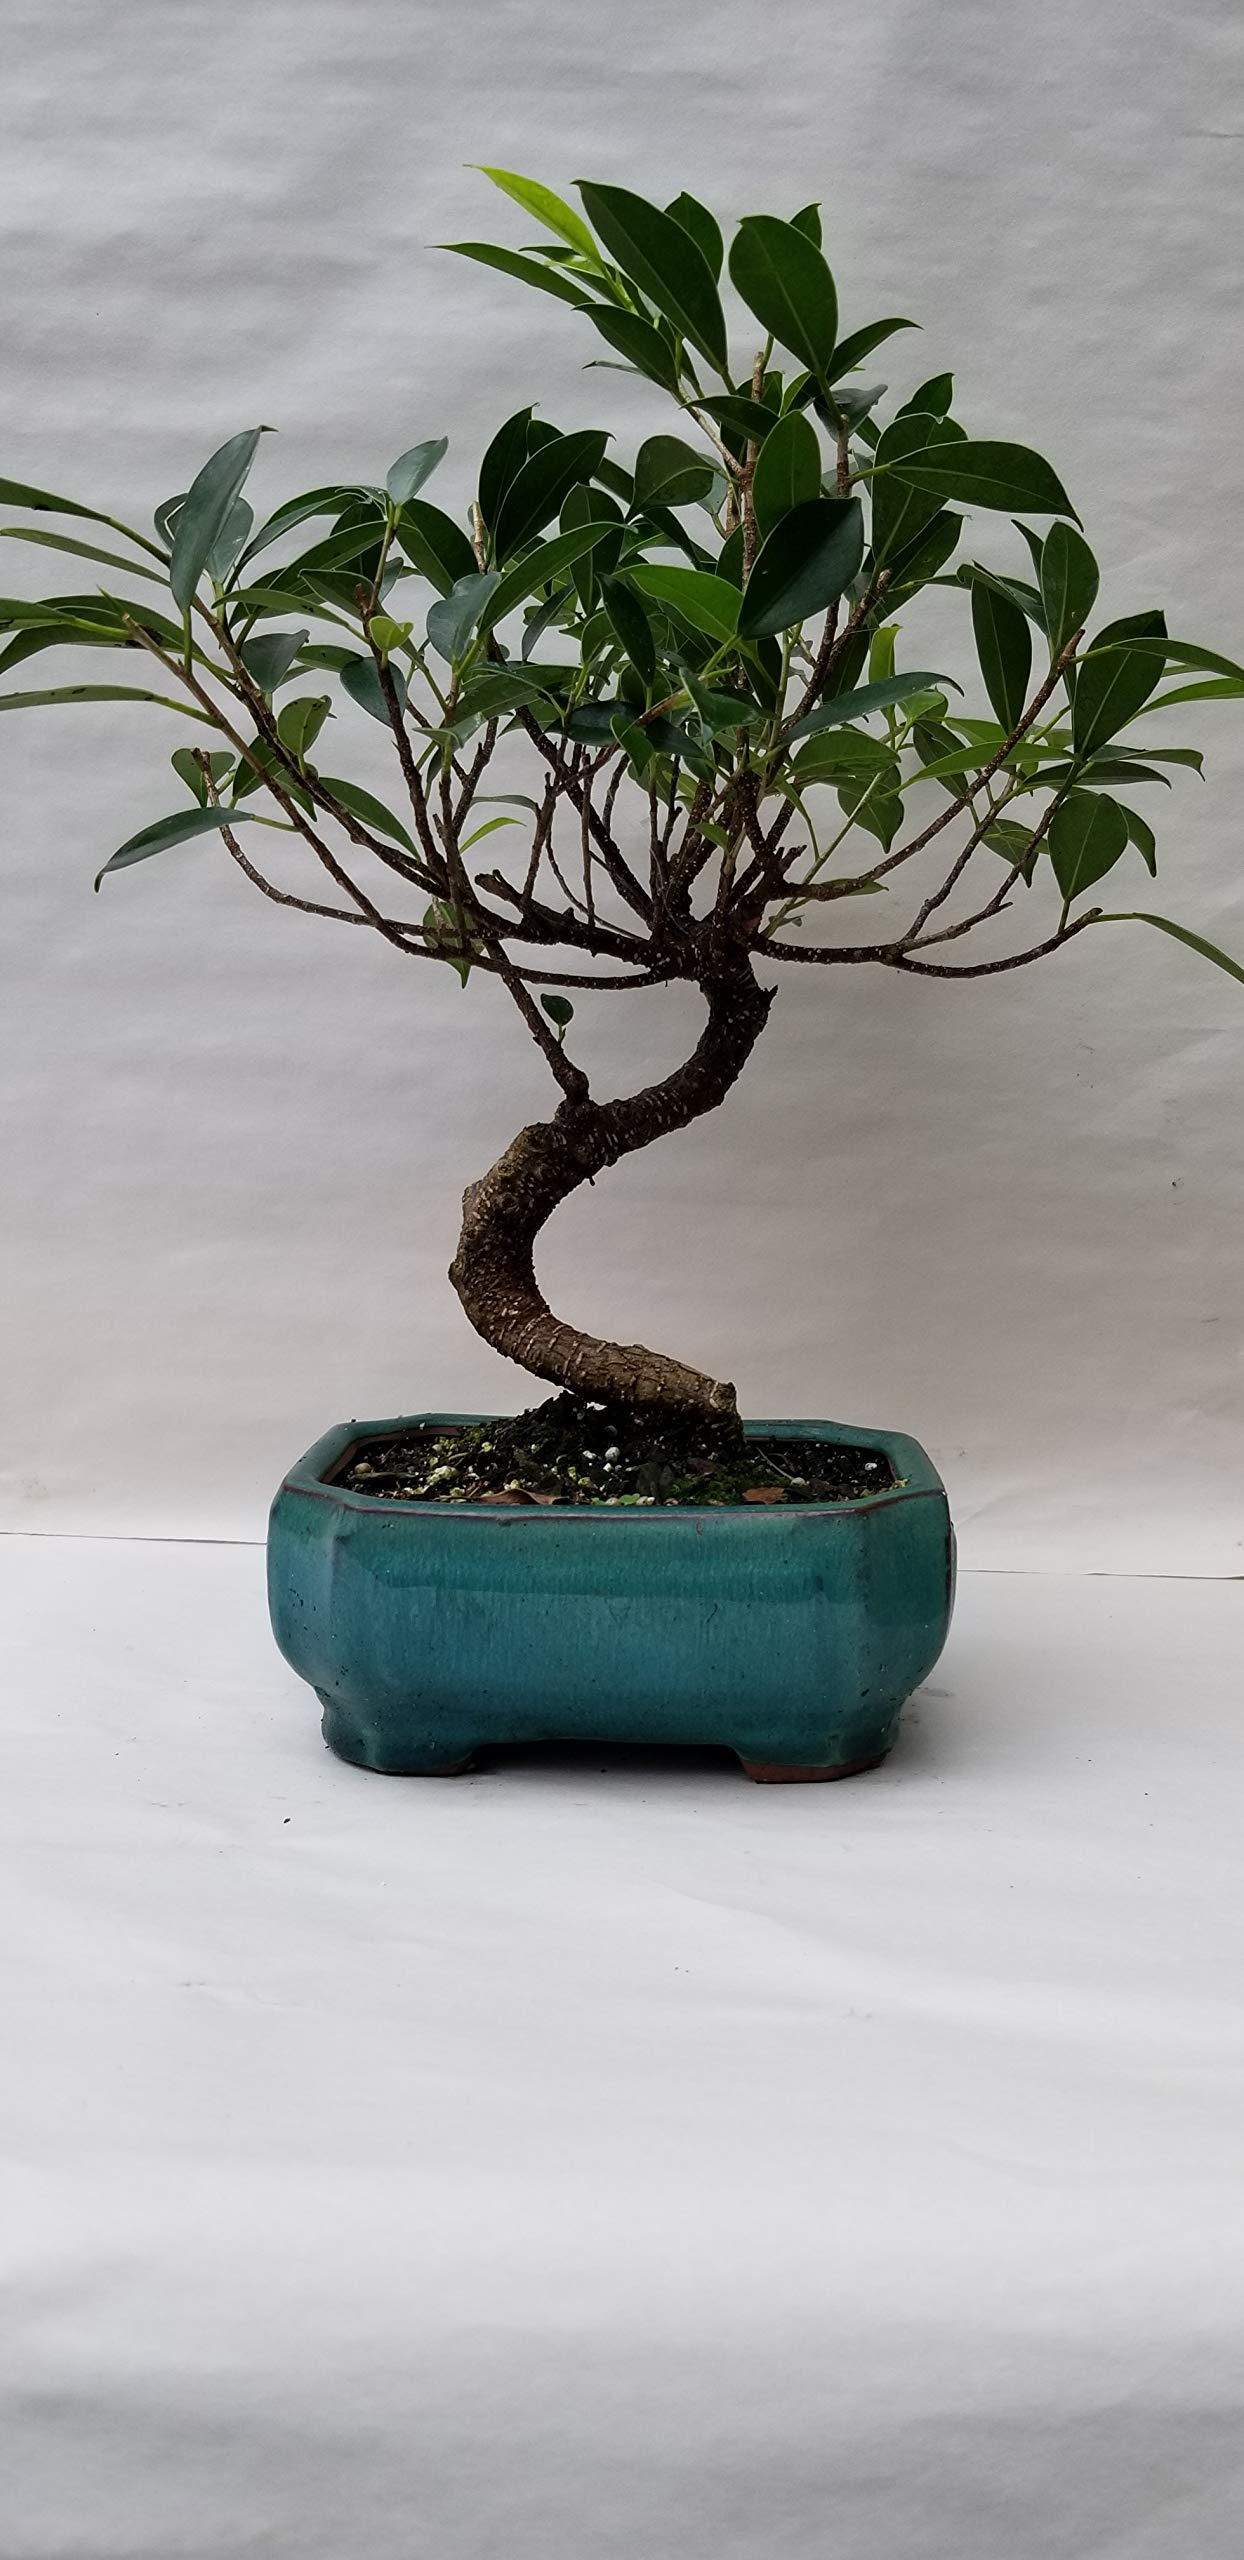 (Finished Bonsai), Bonsai-Banyan Fig (Ficus Retusa) Tree, One of the Most Tolerant, Versatile and Trouble-free Bonsai Trees for Indoor Use. Choice of color of ceramic pot Cream, Aqua & Black pictured